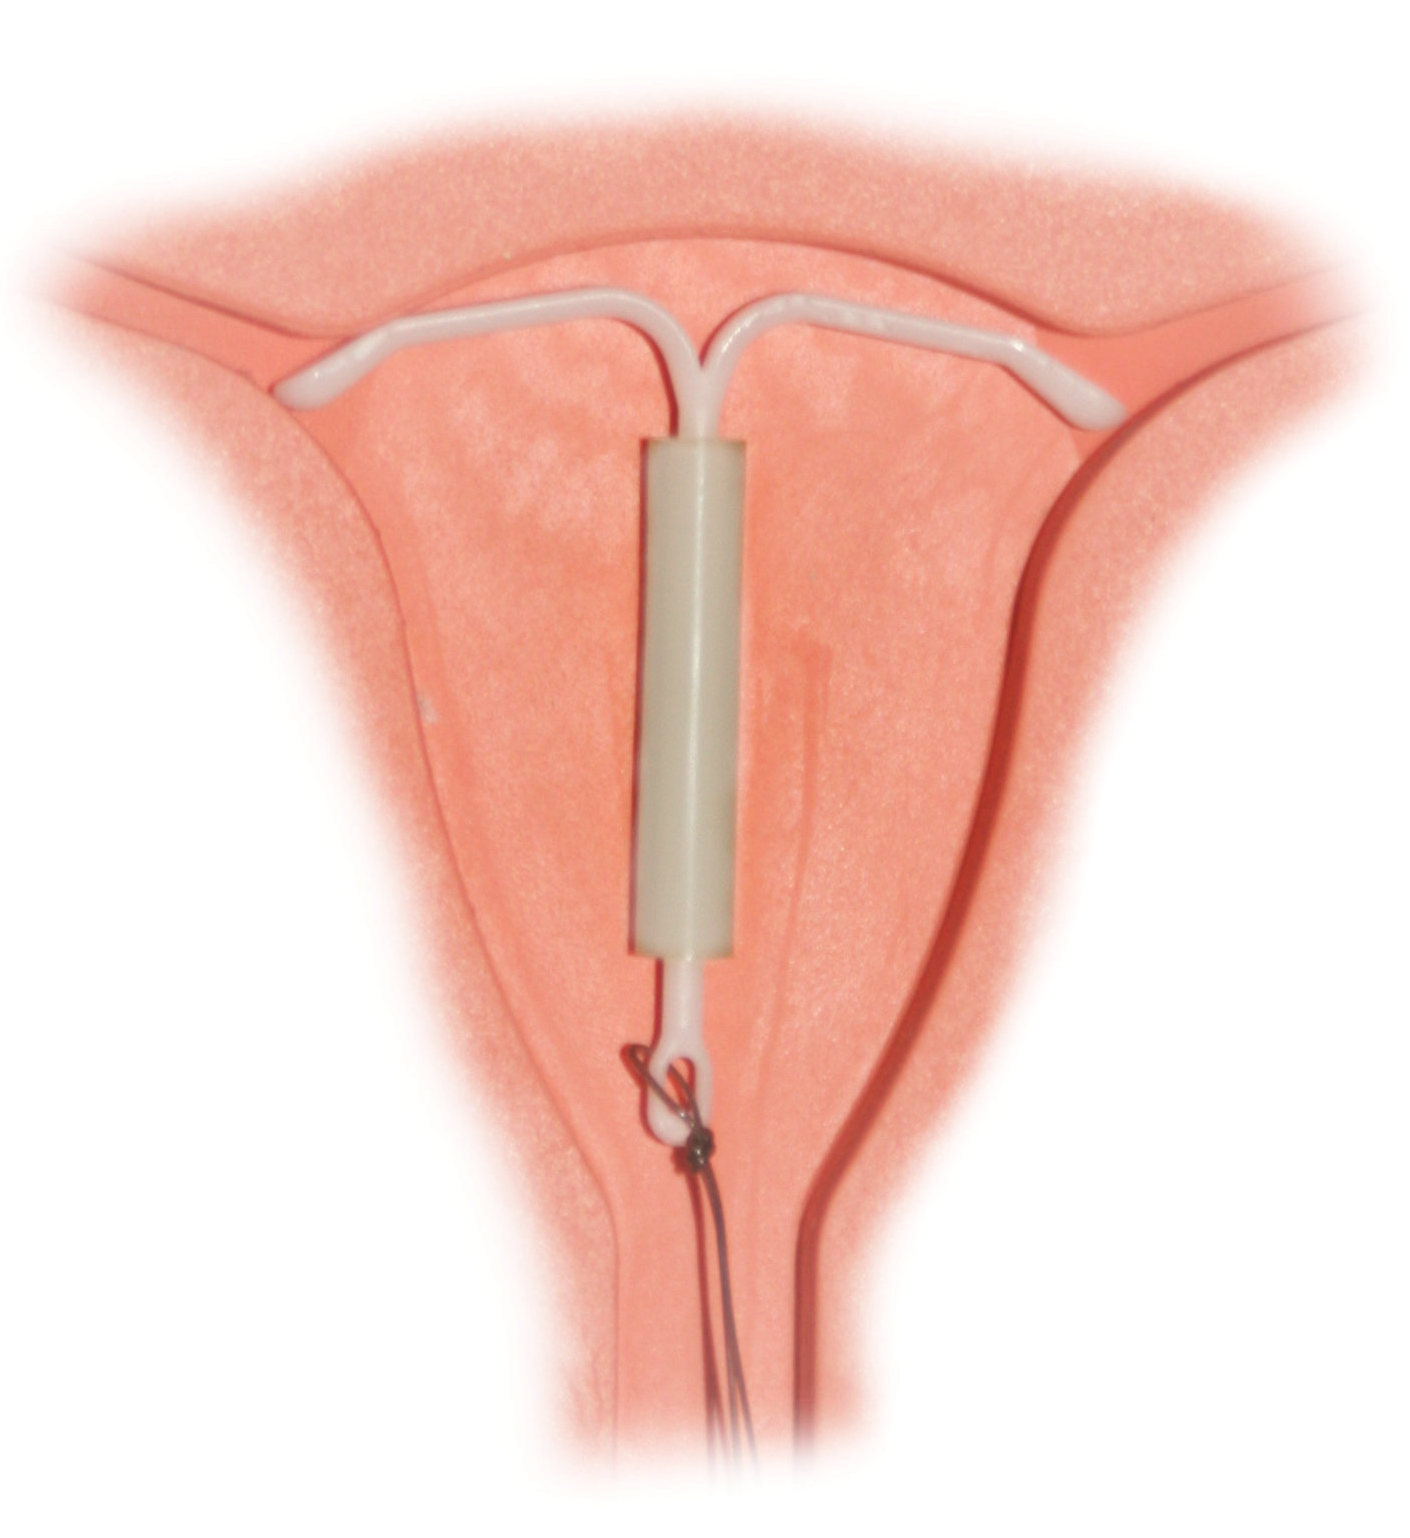 loading image for IUDs